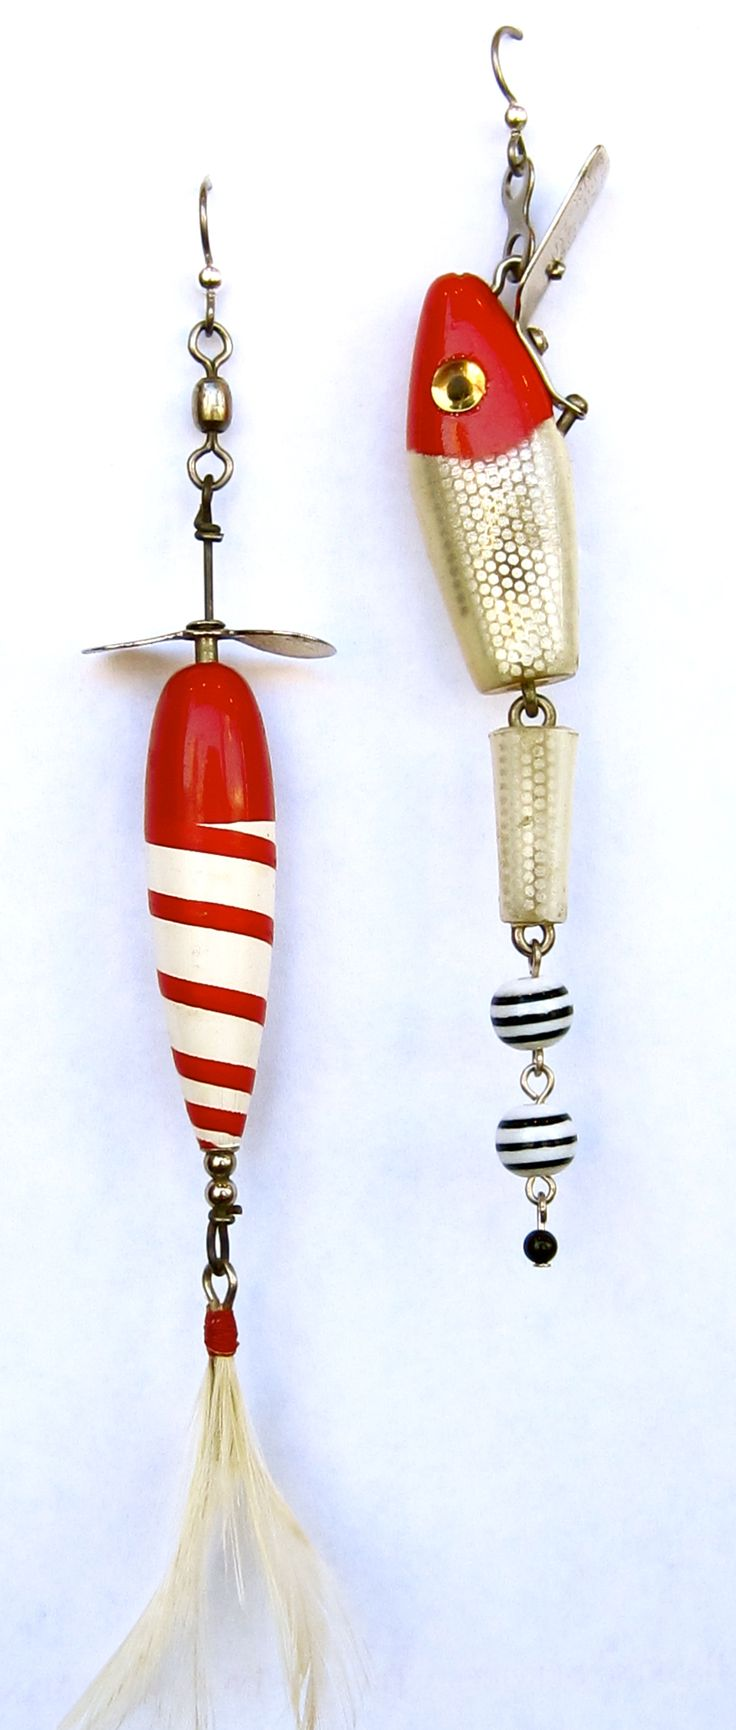 Lure making kits make your own fishing lures - Fishing Lure Earrings From Blue Door Beads